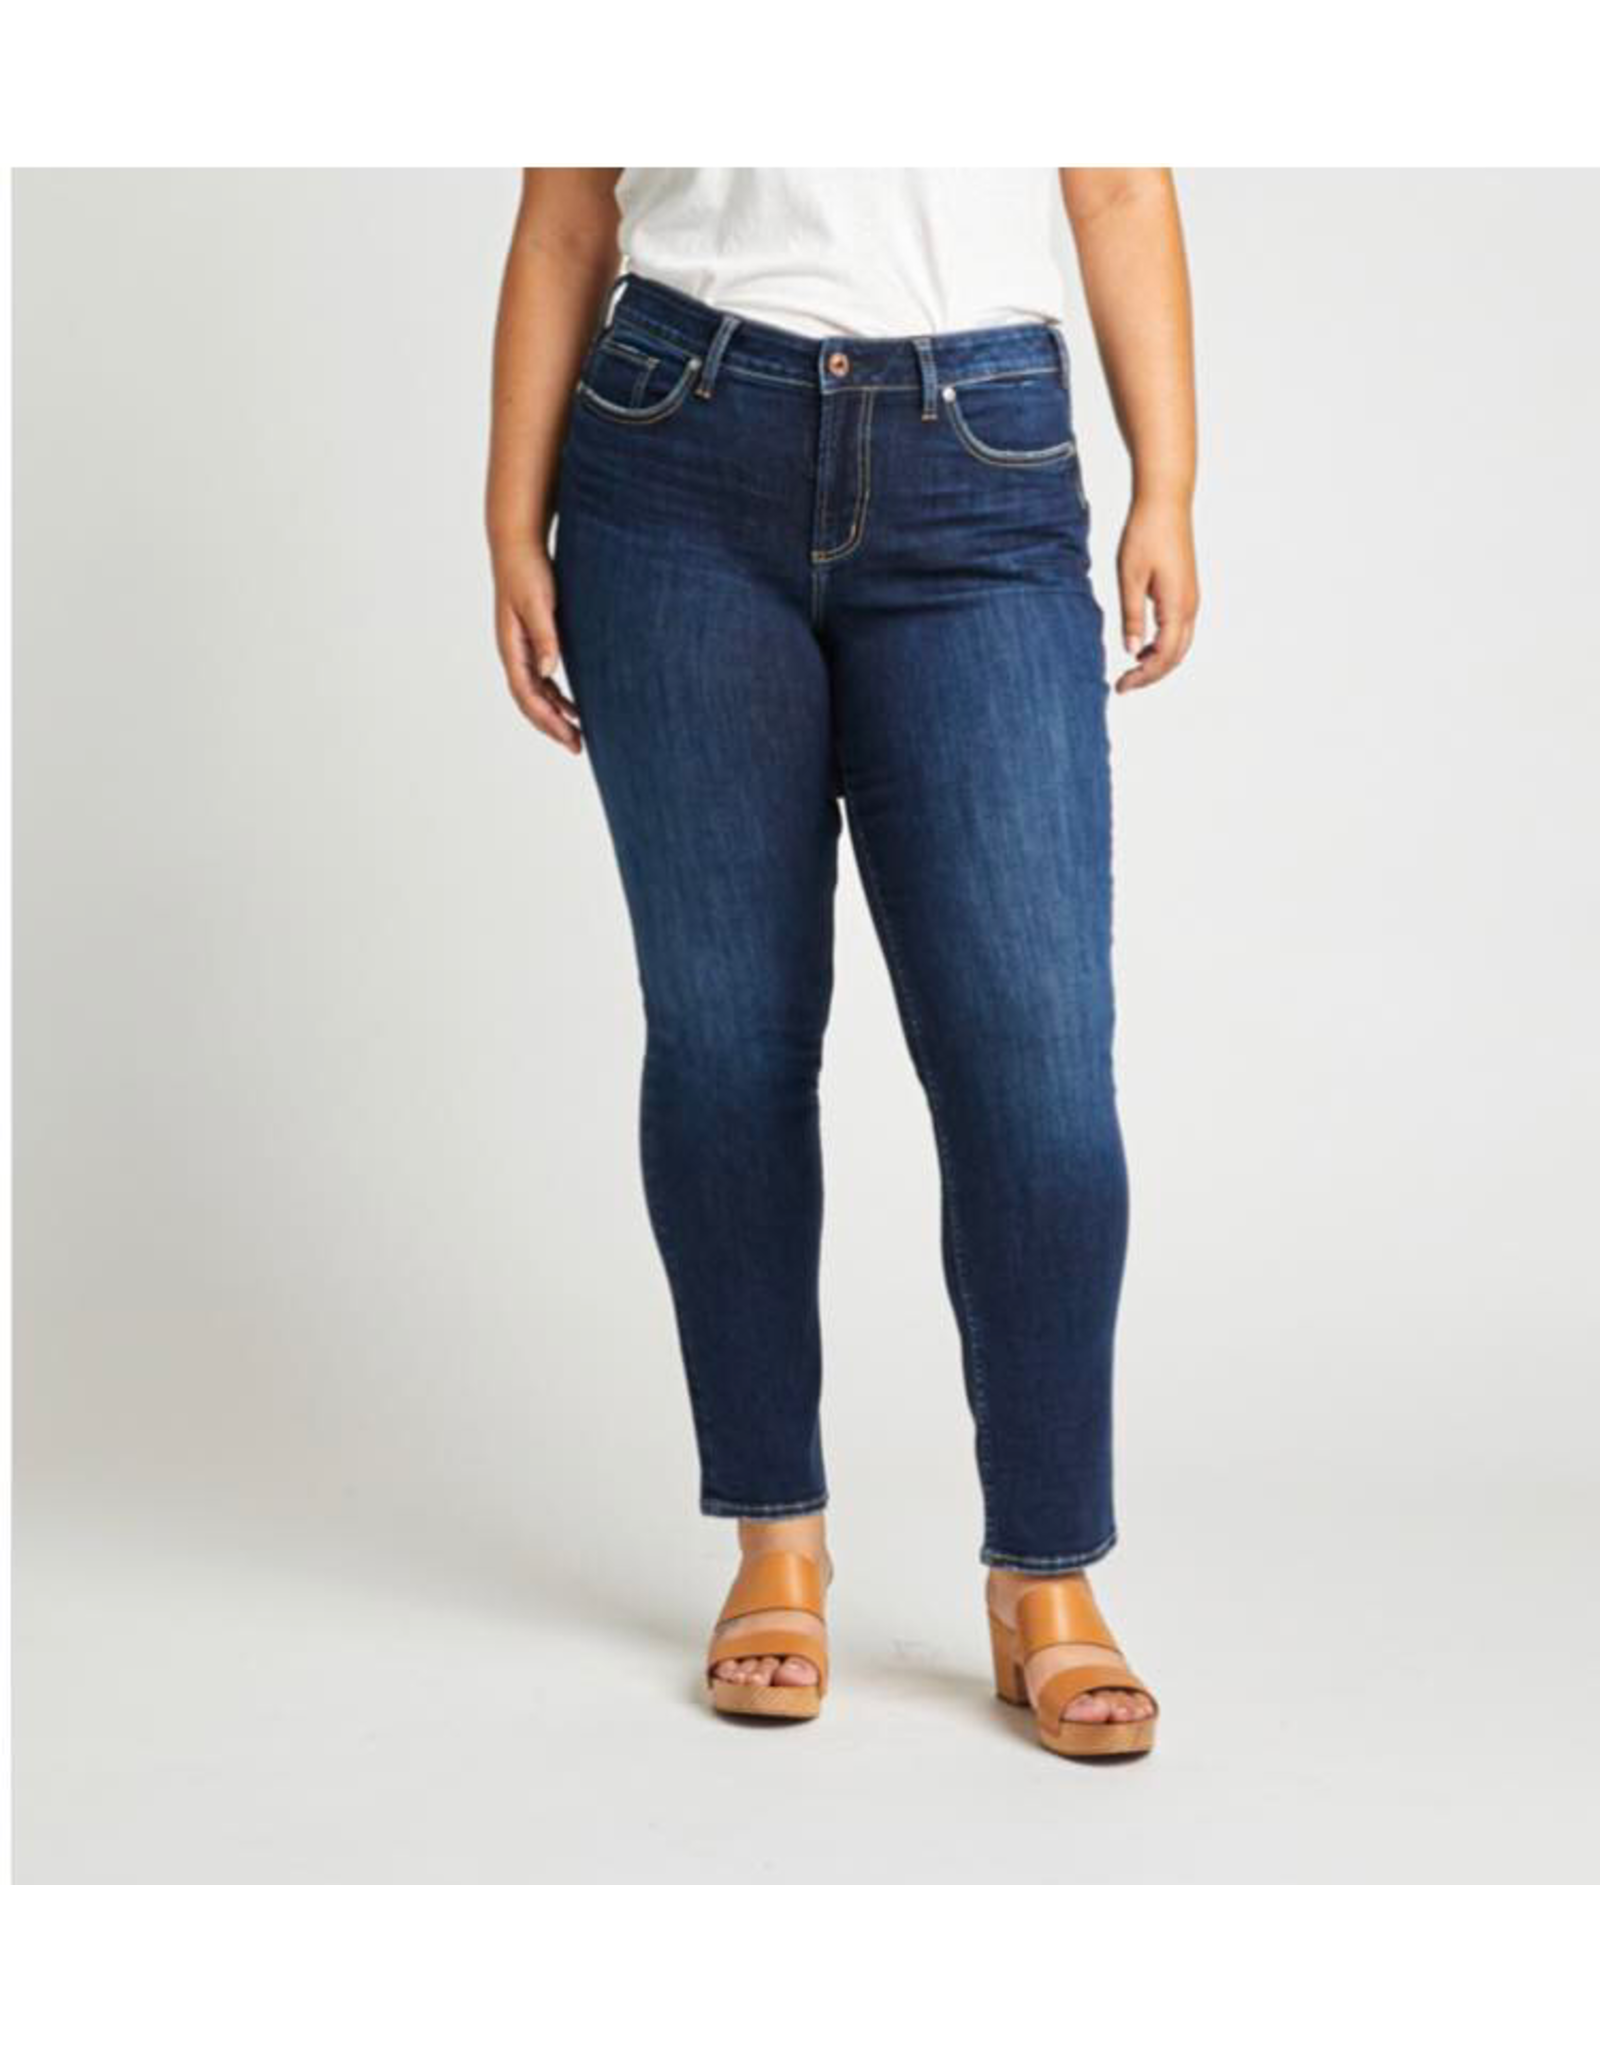 SILVER JEANS SILVER JEANS-JEANS-SSX364